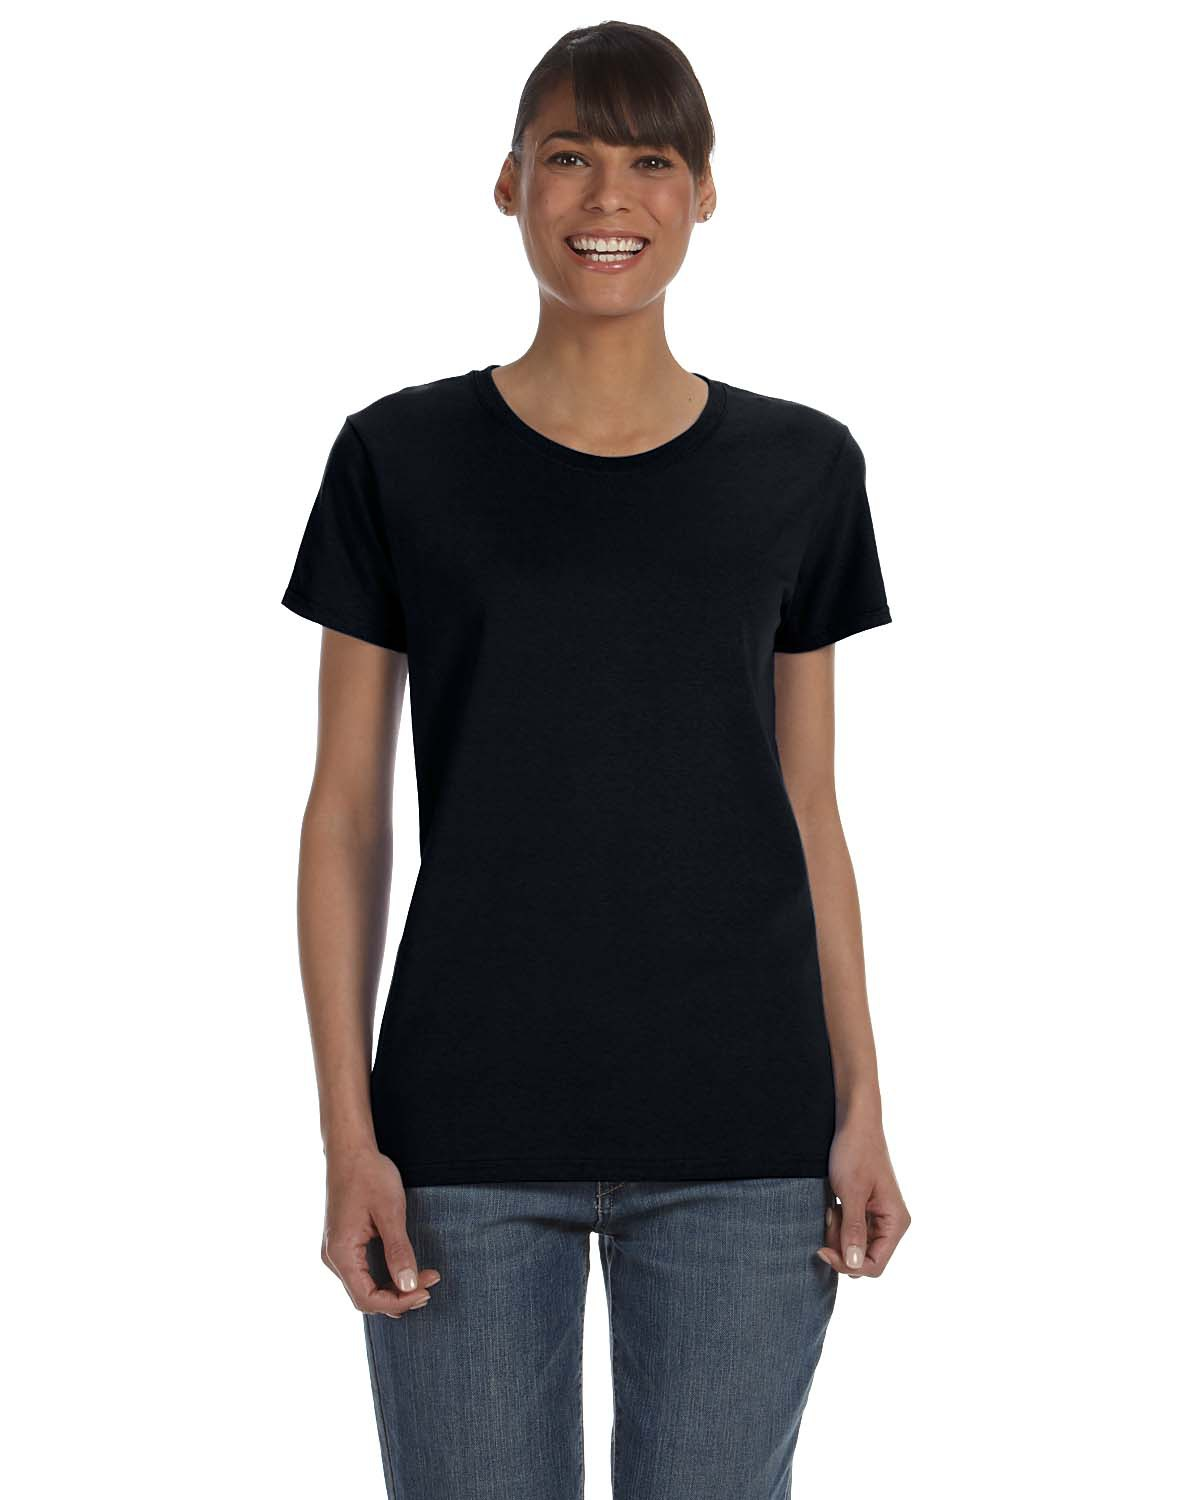 Gildan 5000L- Missy Fit Heavy Cotton Short Sleeve T-Shirt